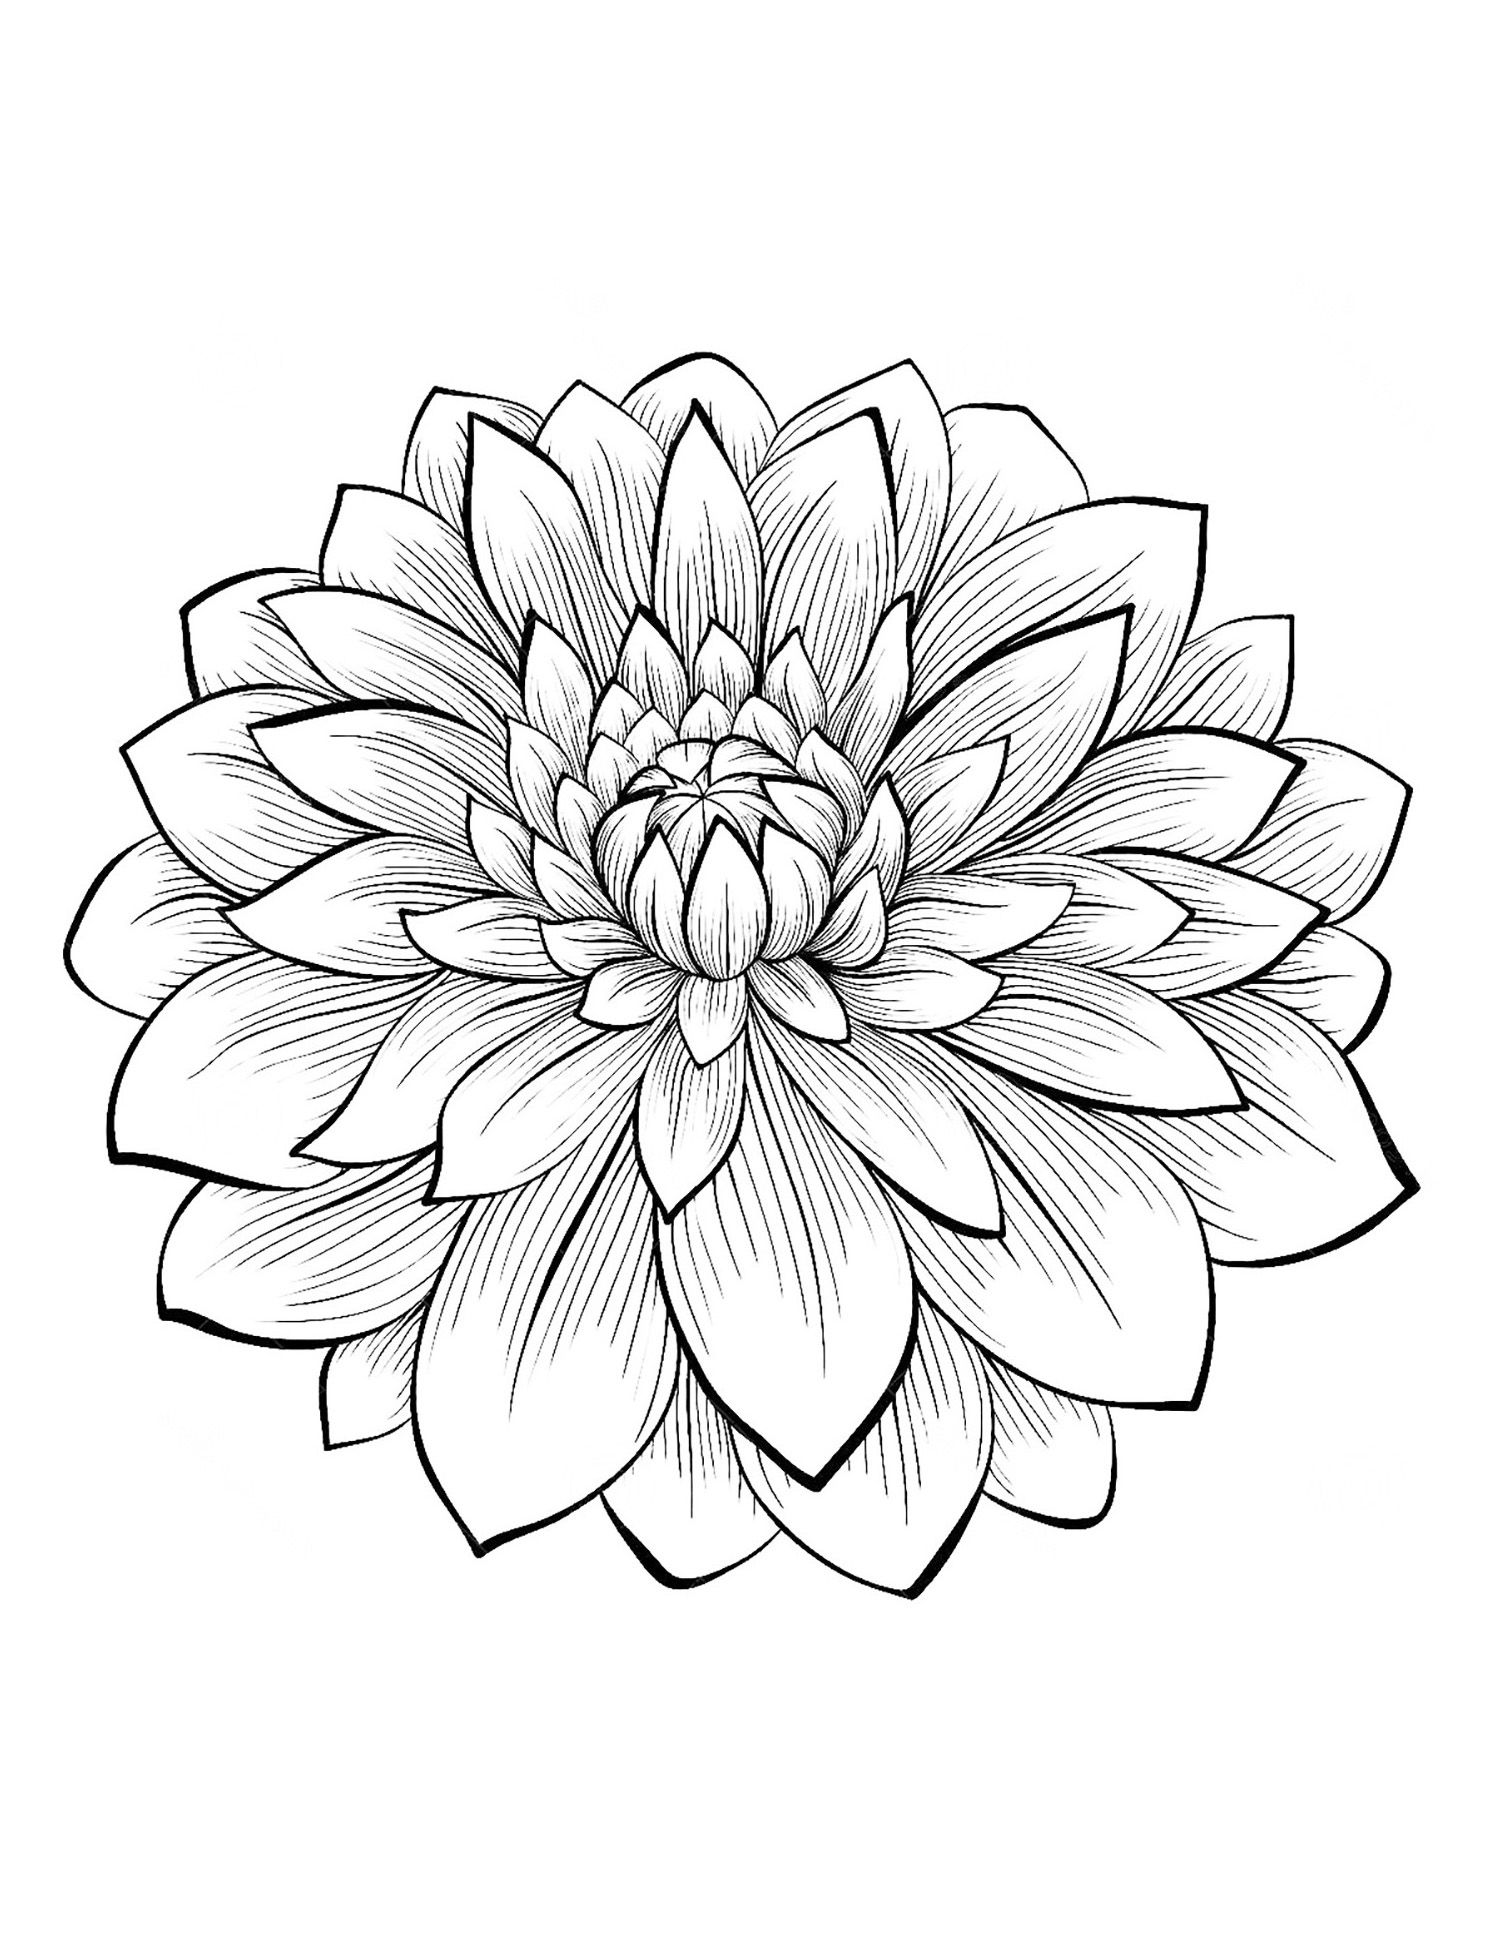 flowers coloring pages pinterest - photo#24